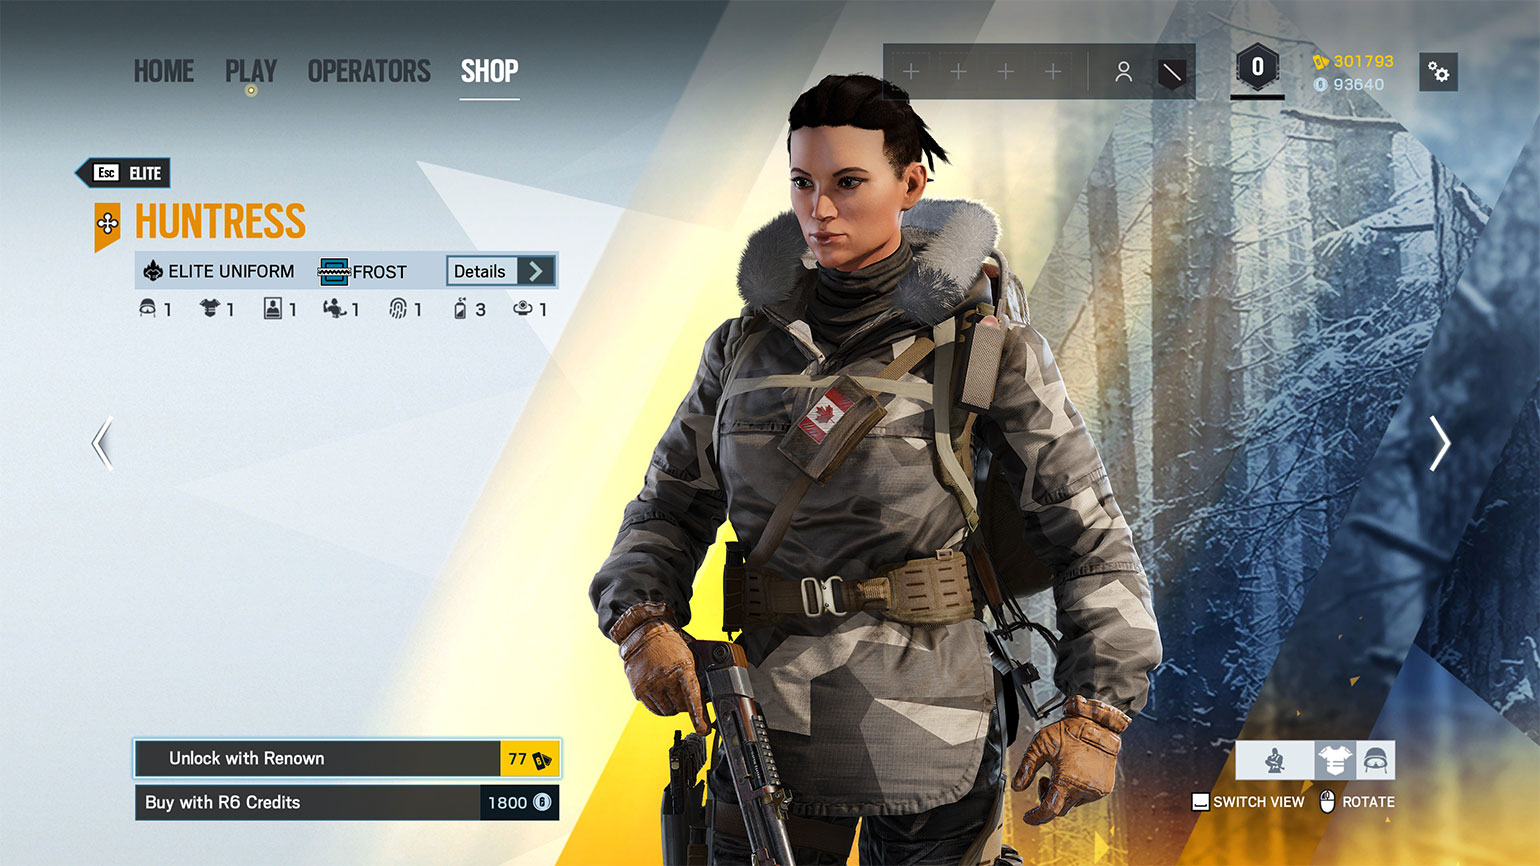 The Rainbow Six shop is getting a facelift